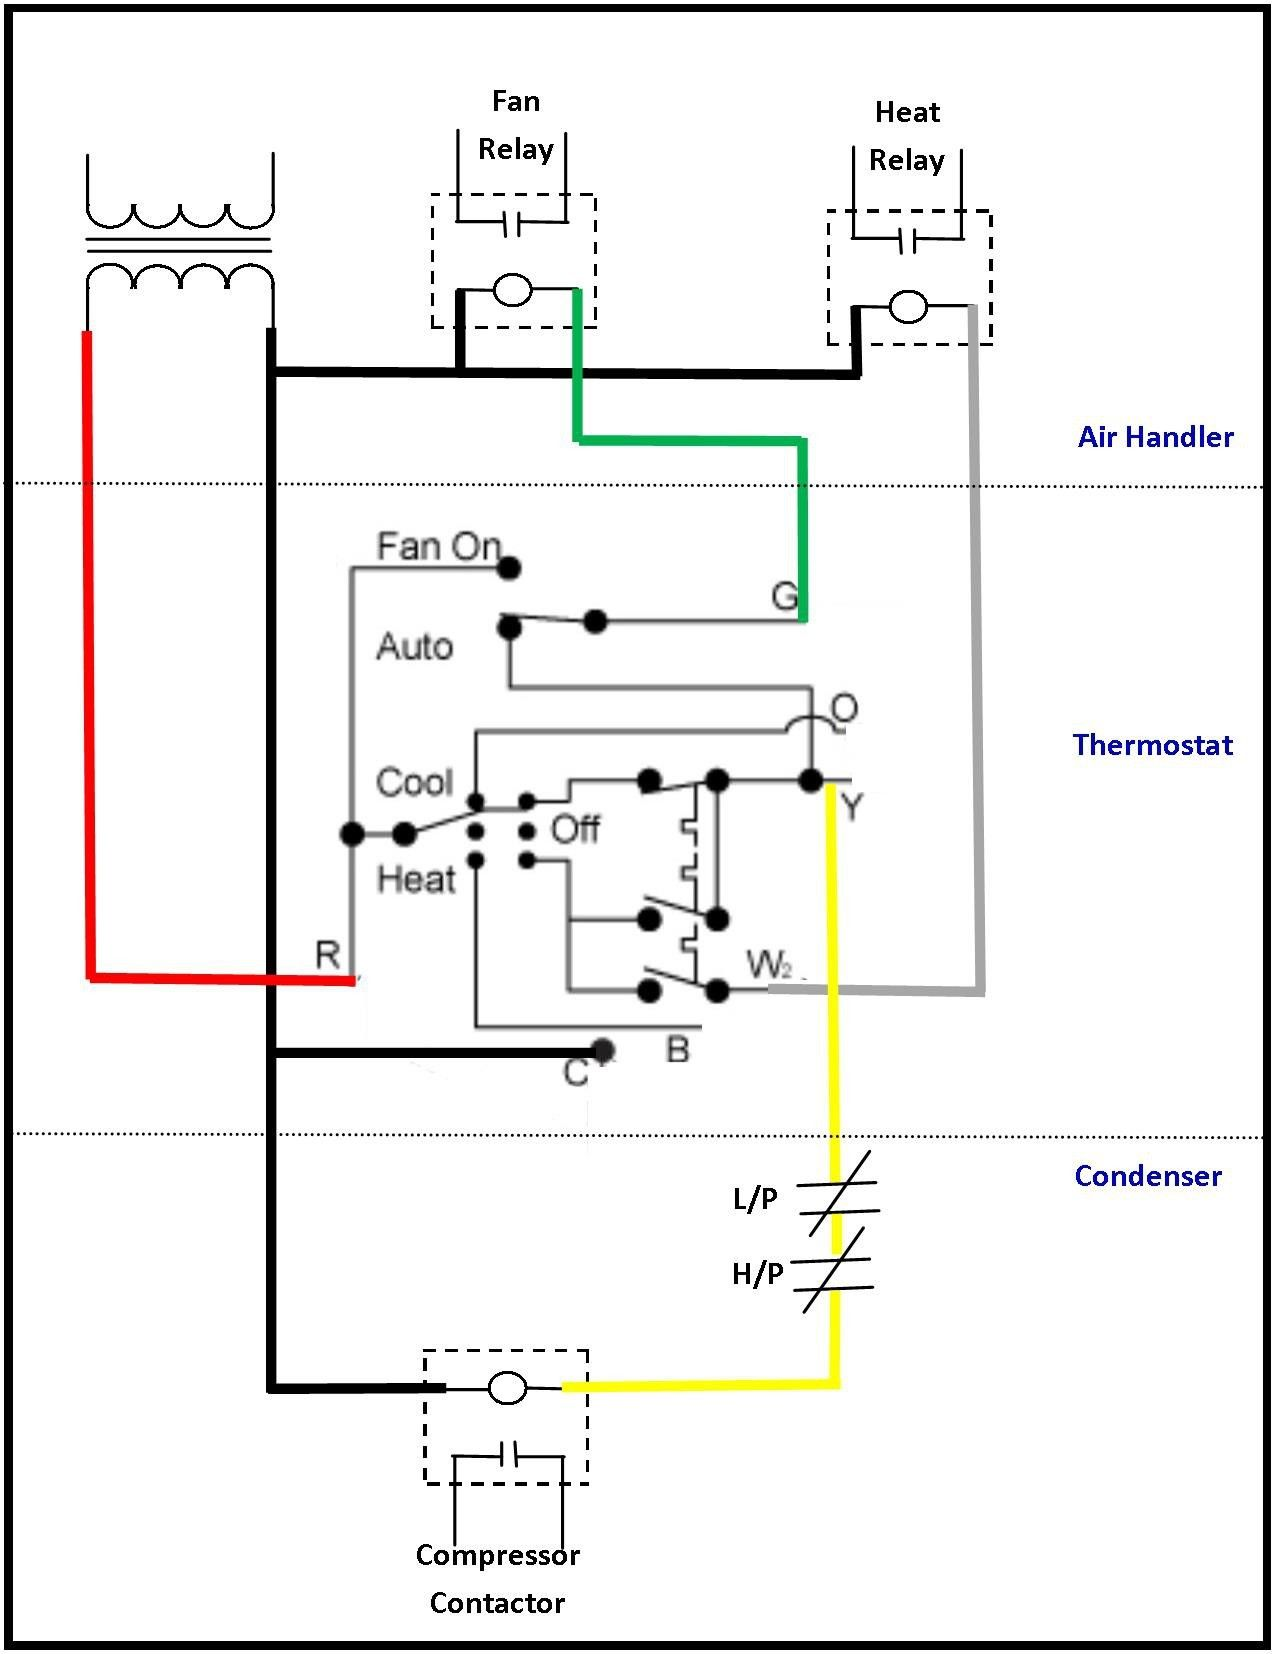 New Bryant Gas Furnace Wiring Diagram #diagram #diagramsample  #diagramtemplate #wiringdi… | Electrical circuit diagram, Electrical wiring  diagram, Thermostat wiringPinterest